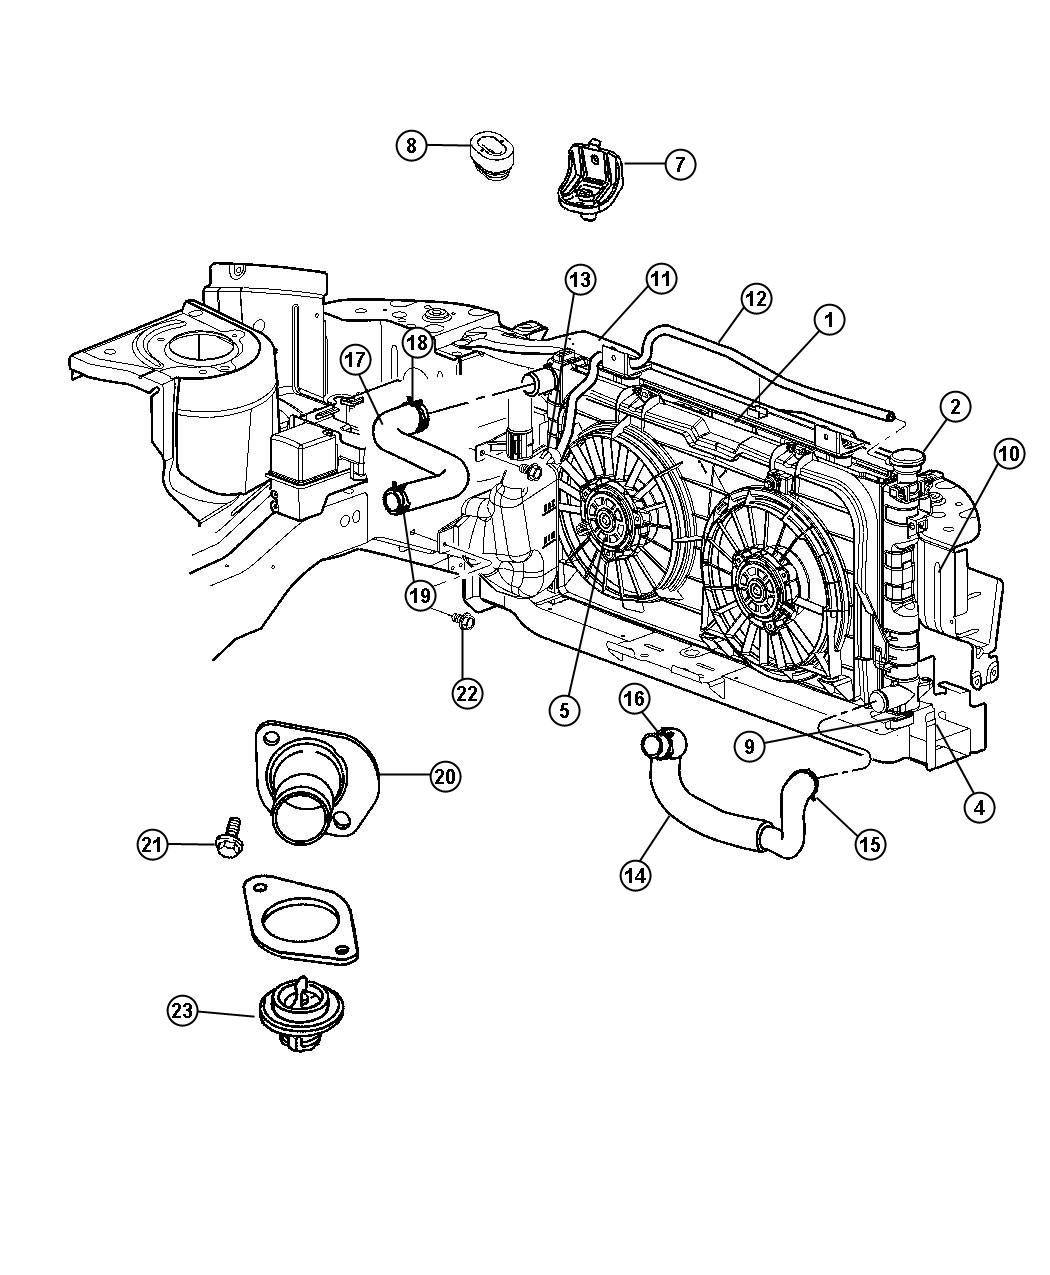 Dodge Ram Used For Hose And Clamp Radiator